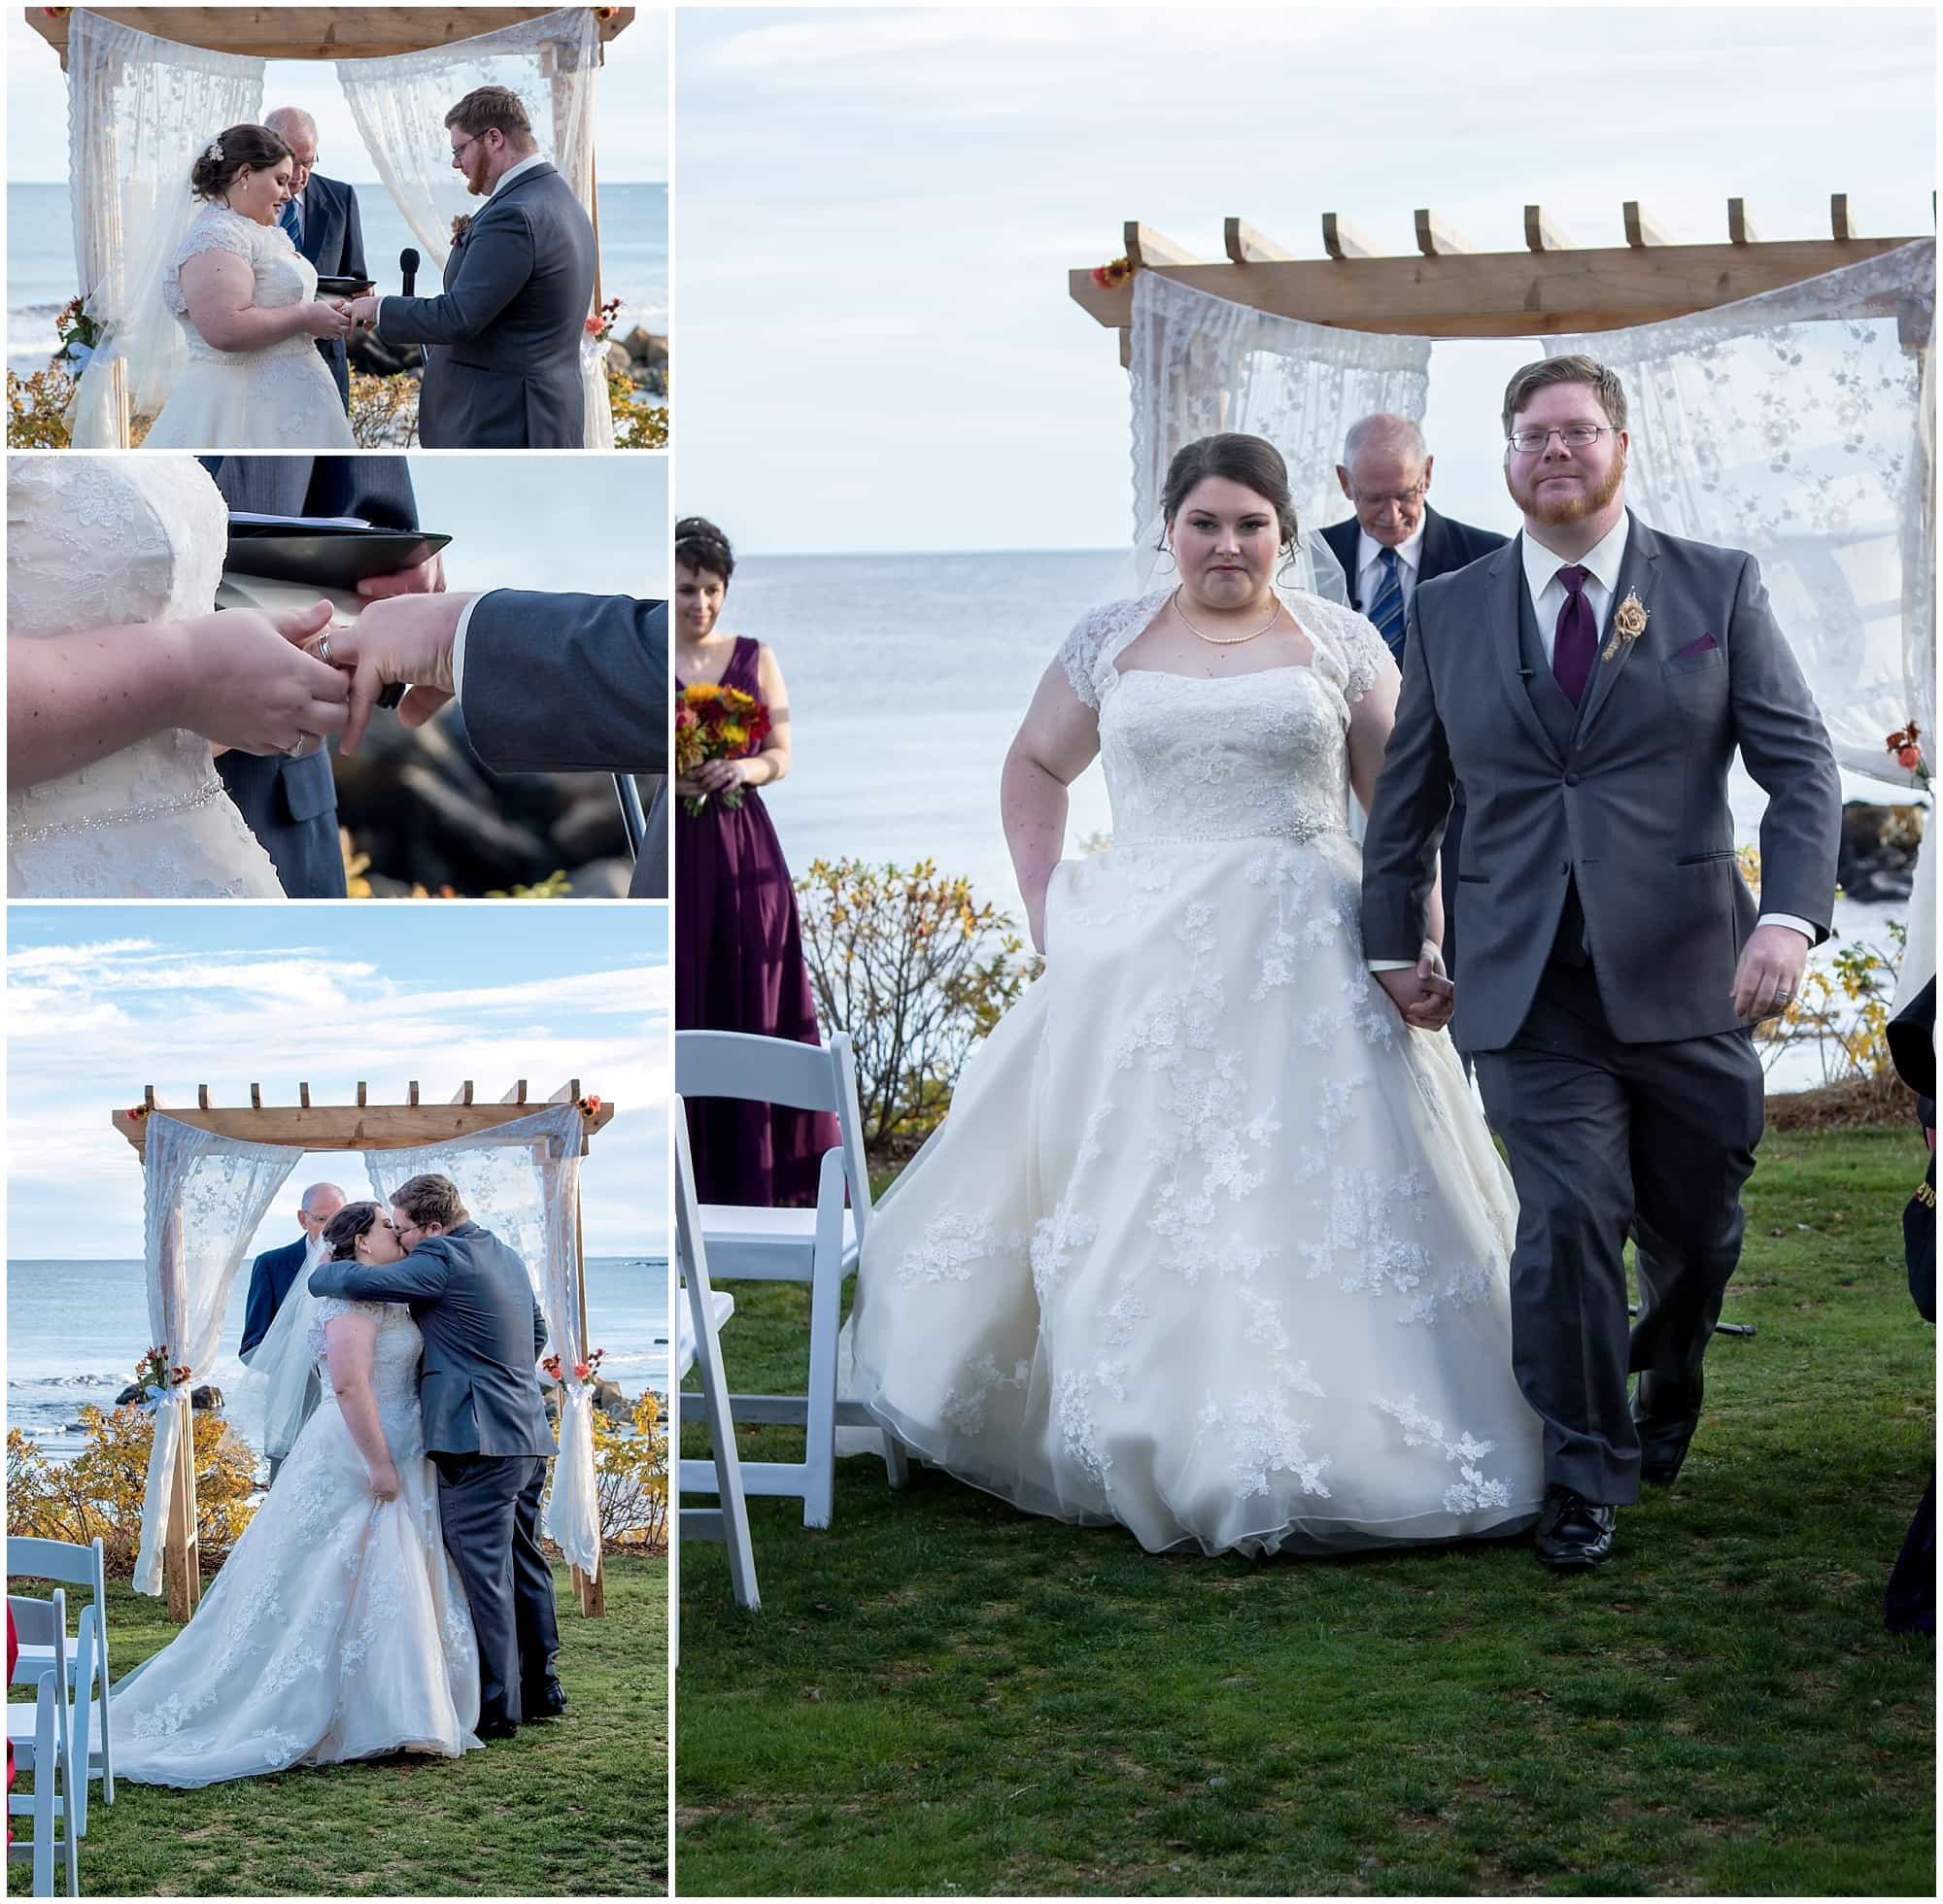 The bride and groom exchange their wedding rings then have their first kiss during their White Point wedding.